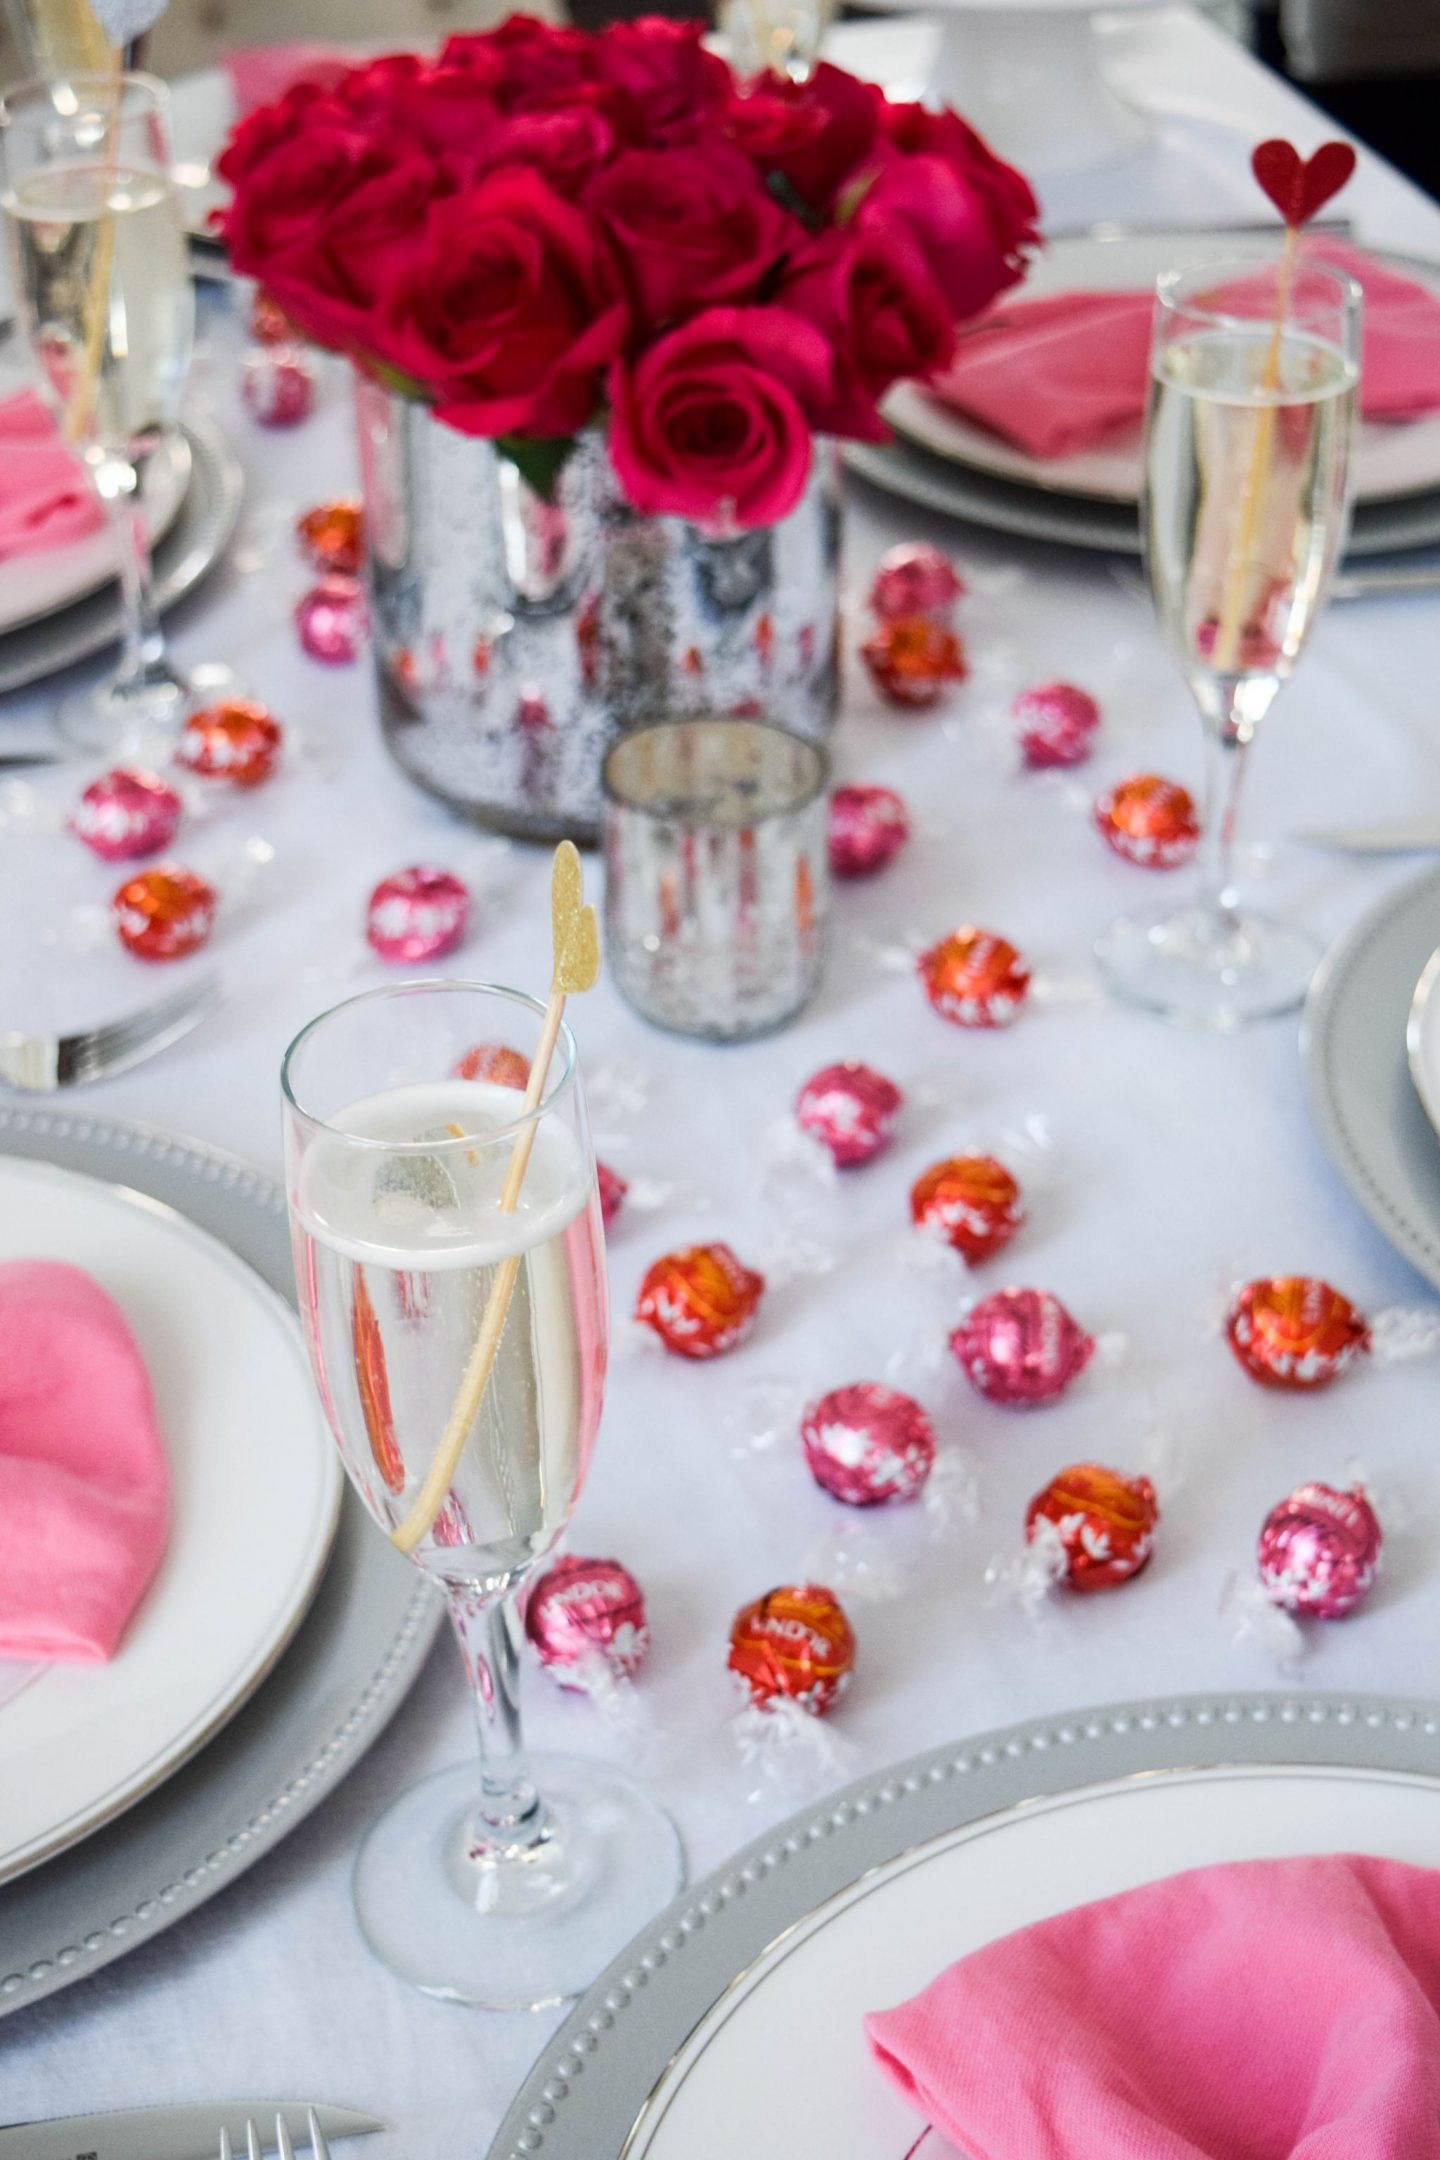 A Chocolate and Champagne Galentine's Day Brunch with Lindt LINDOR Truffles